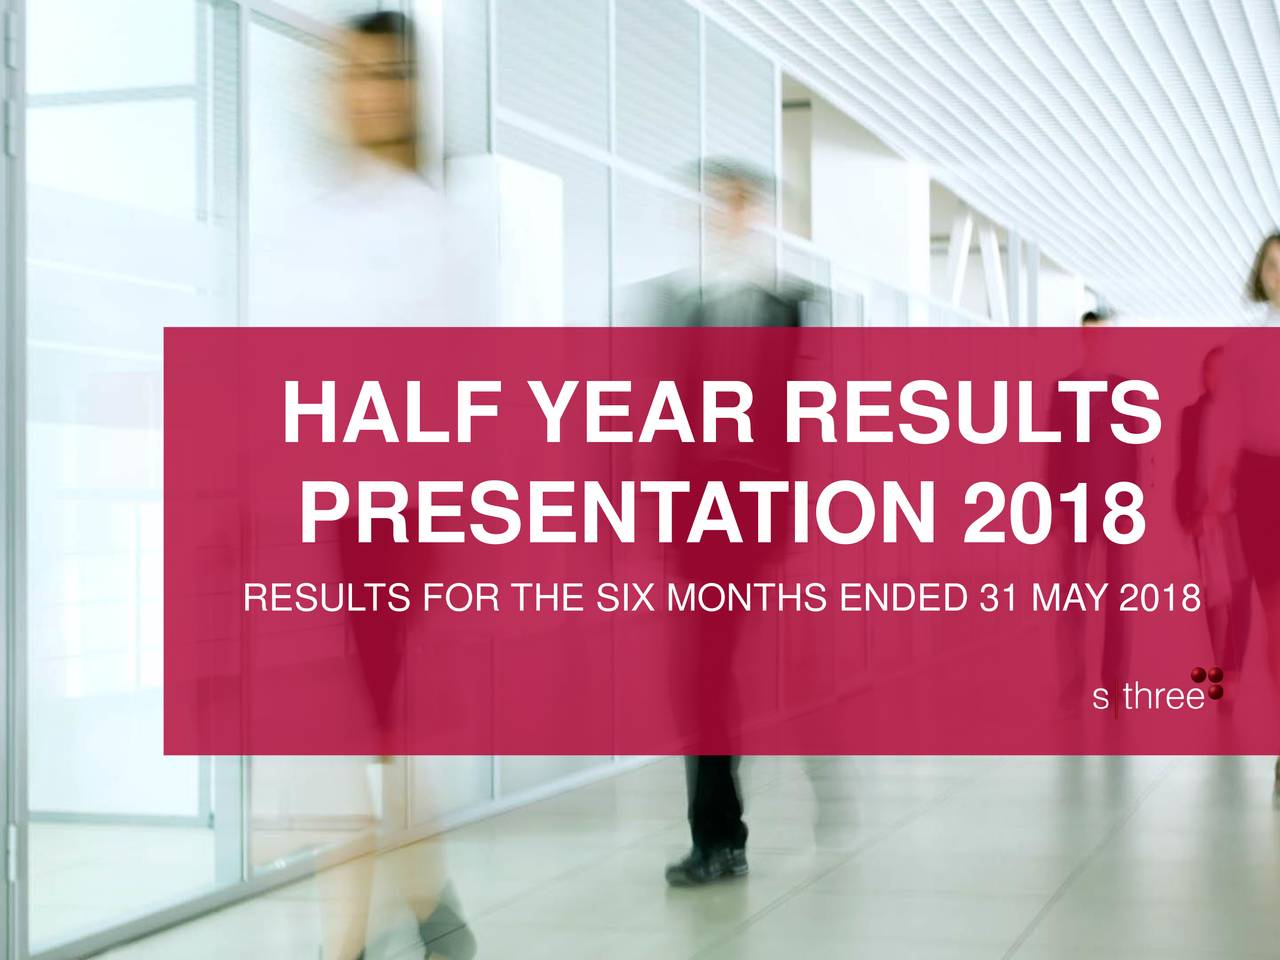 PRESENT ATION 2018 RESULTS FOR THE SIX MONTHS ENDED 31 MAY 2018